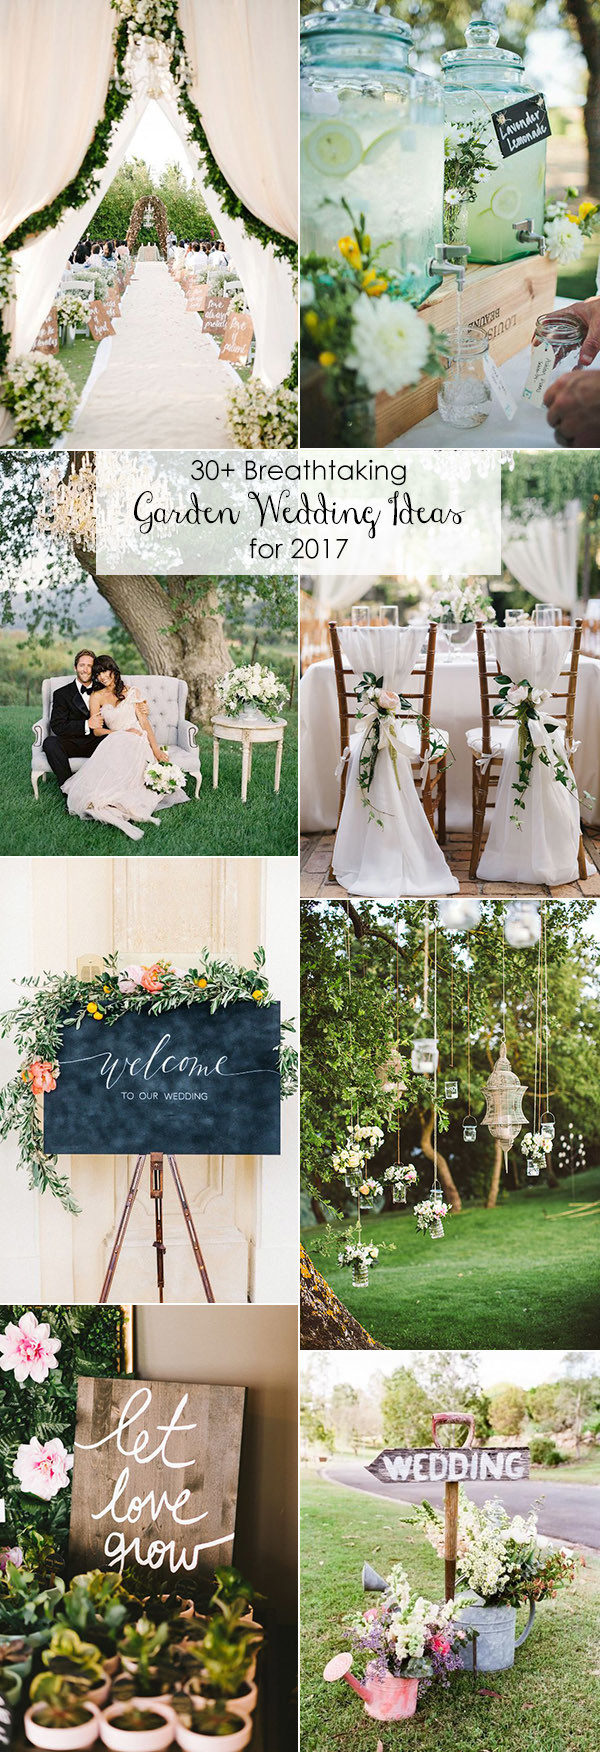 10 Spring Wedding Ideas You'll Want to Steal